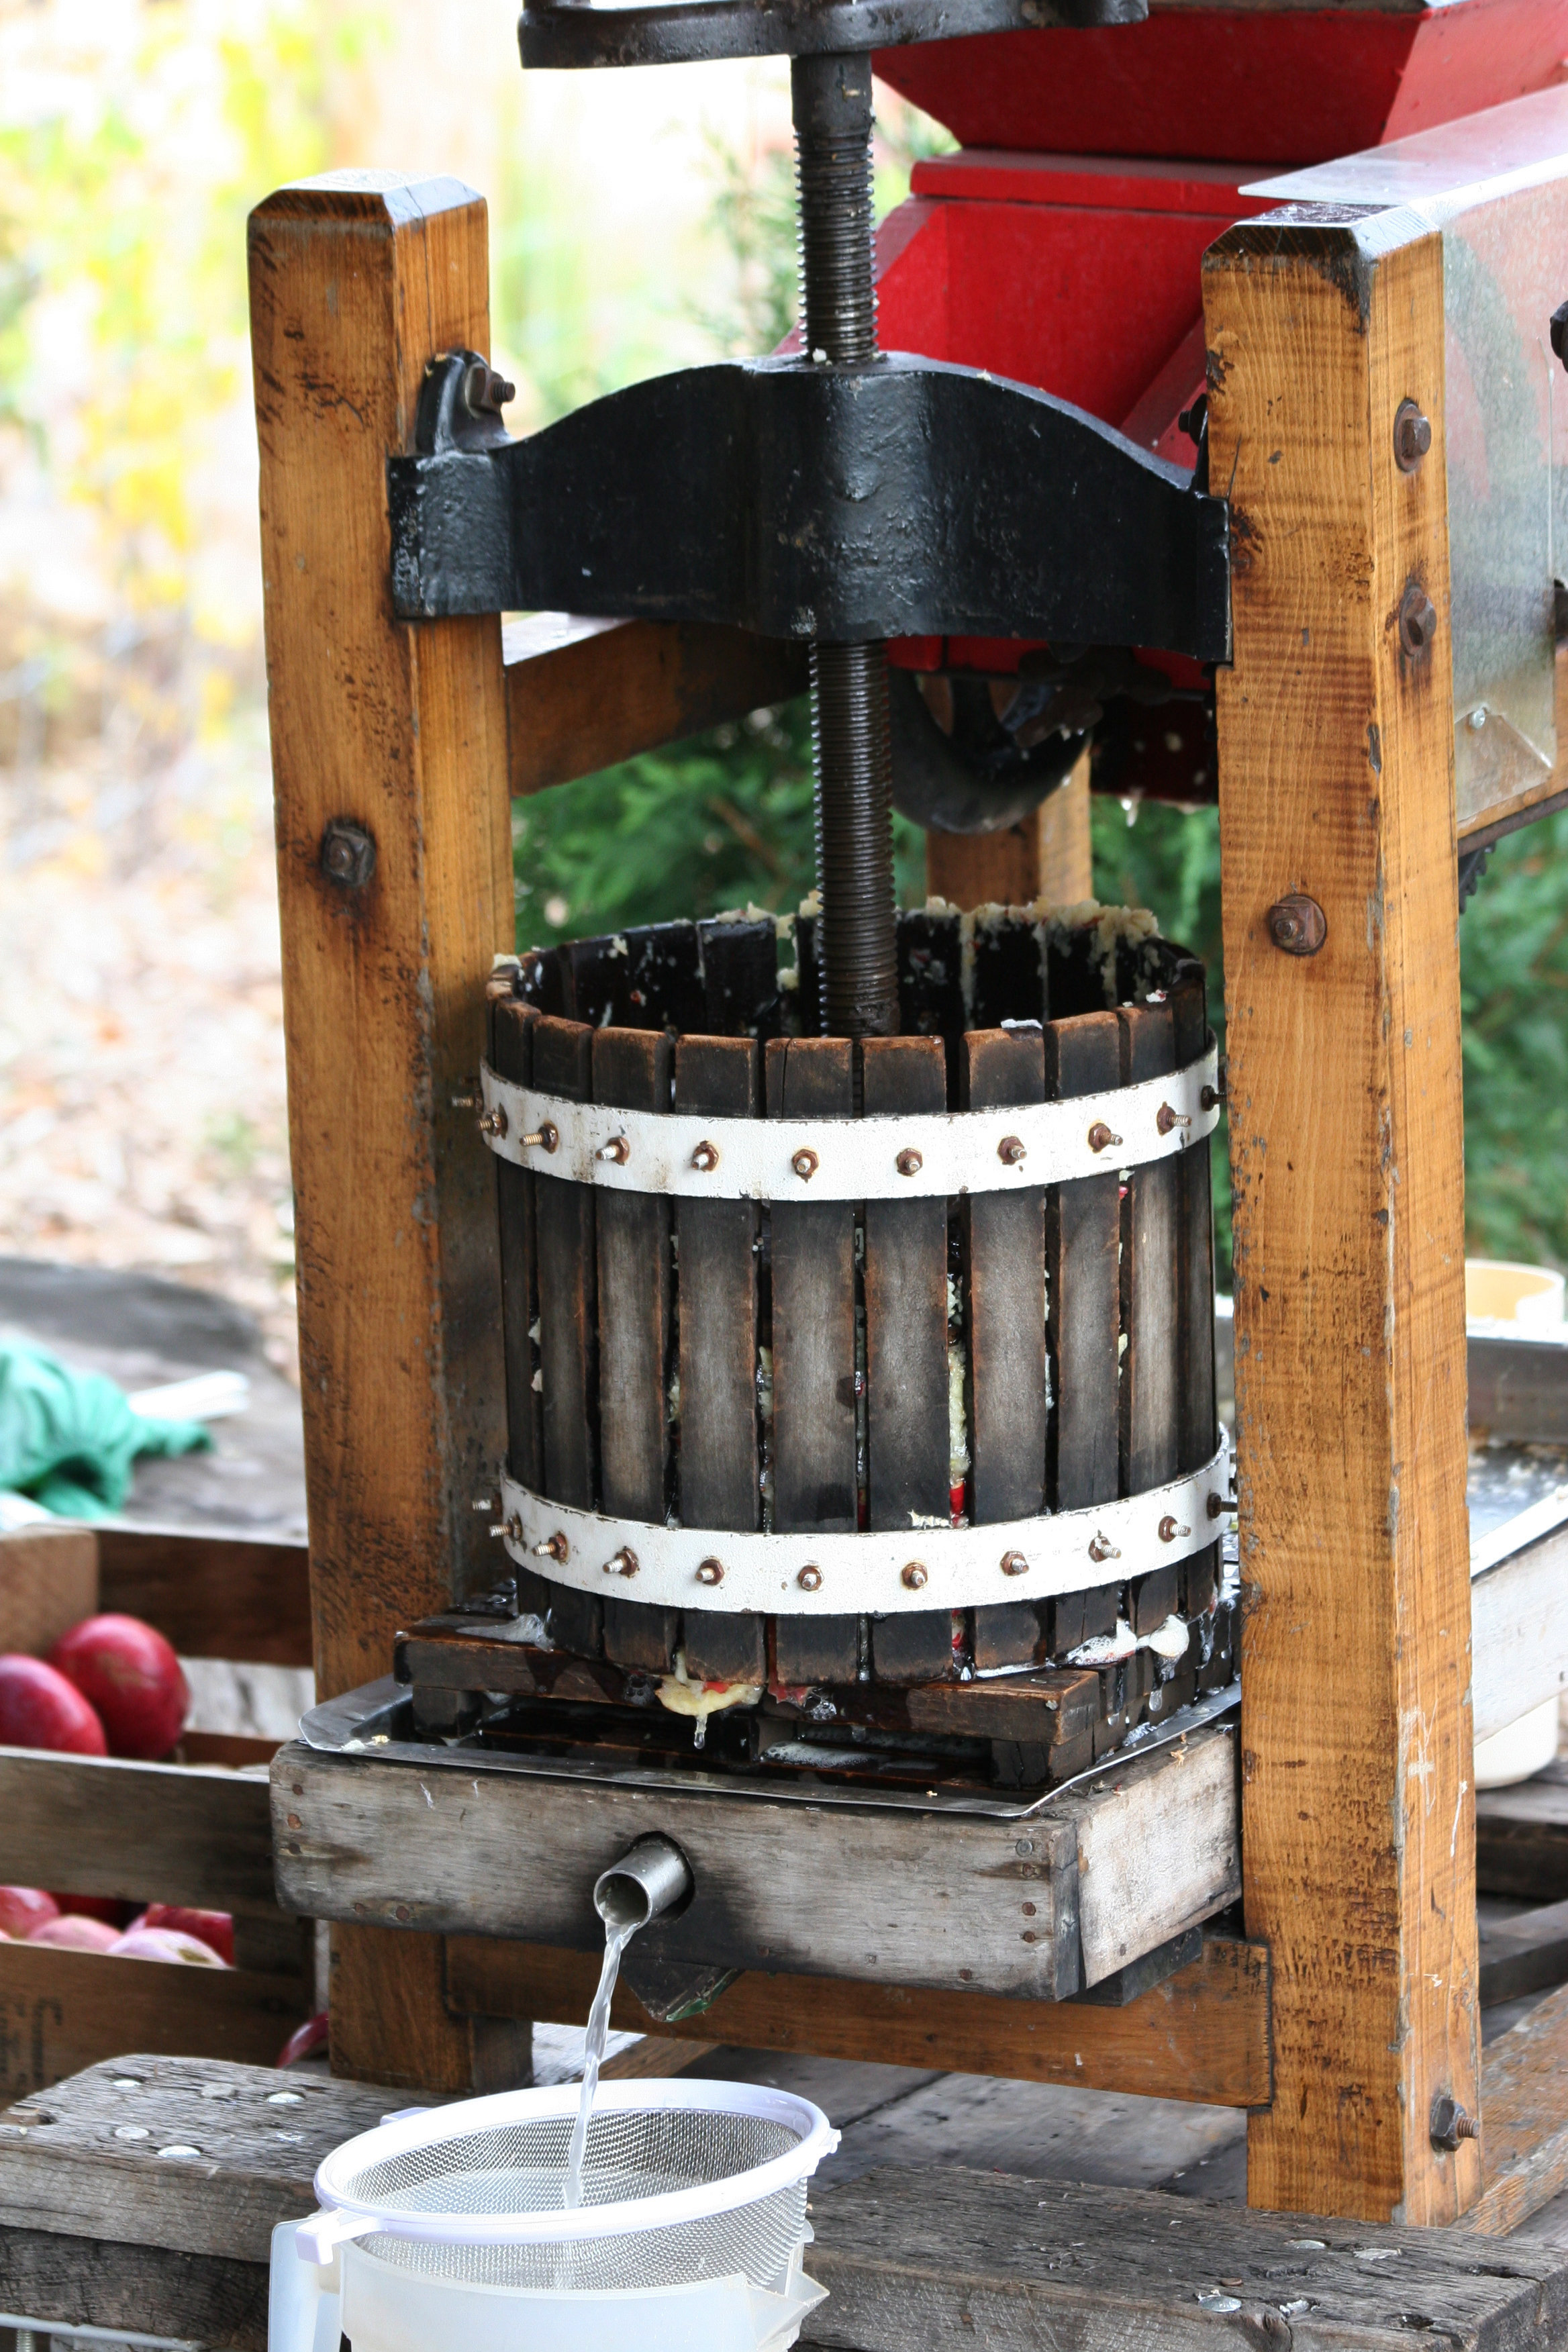 Make delicious juice using an apple press (Thinkstock/PA)